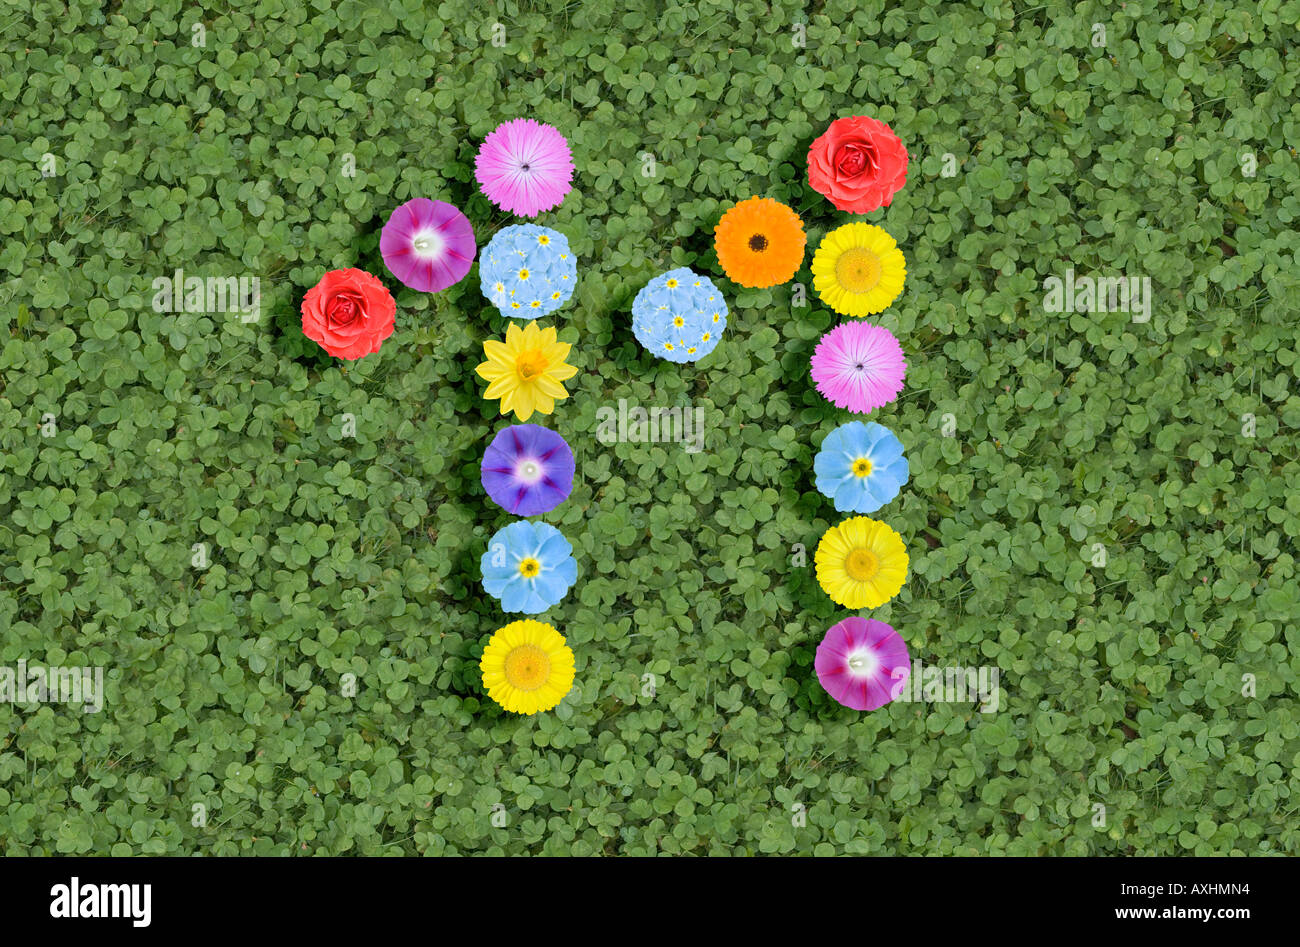 Number 11 Written With Flowers Stock Photo Royalty Free Image 9628755